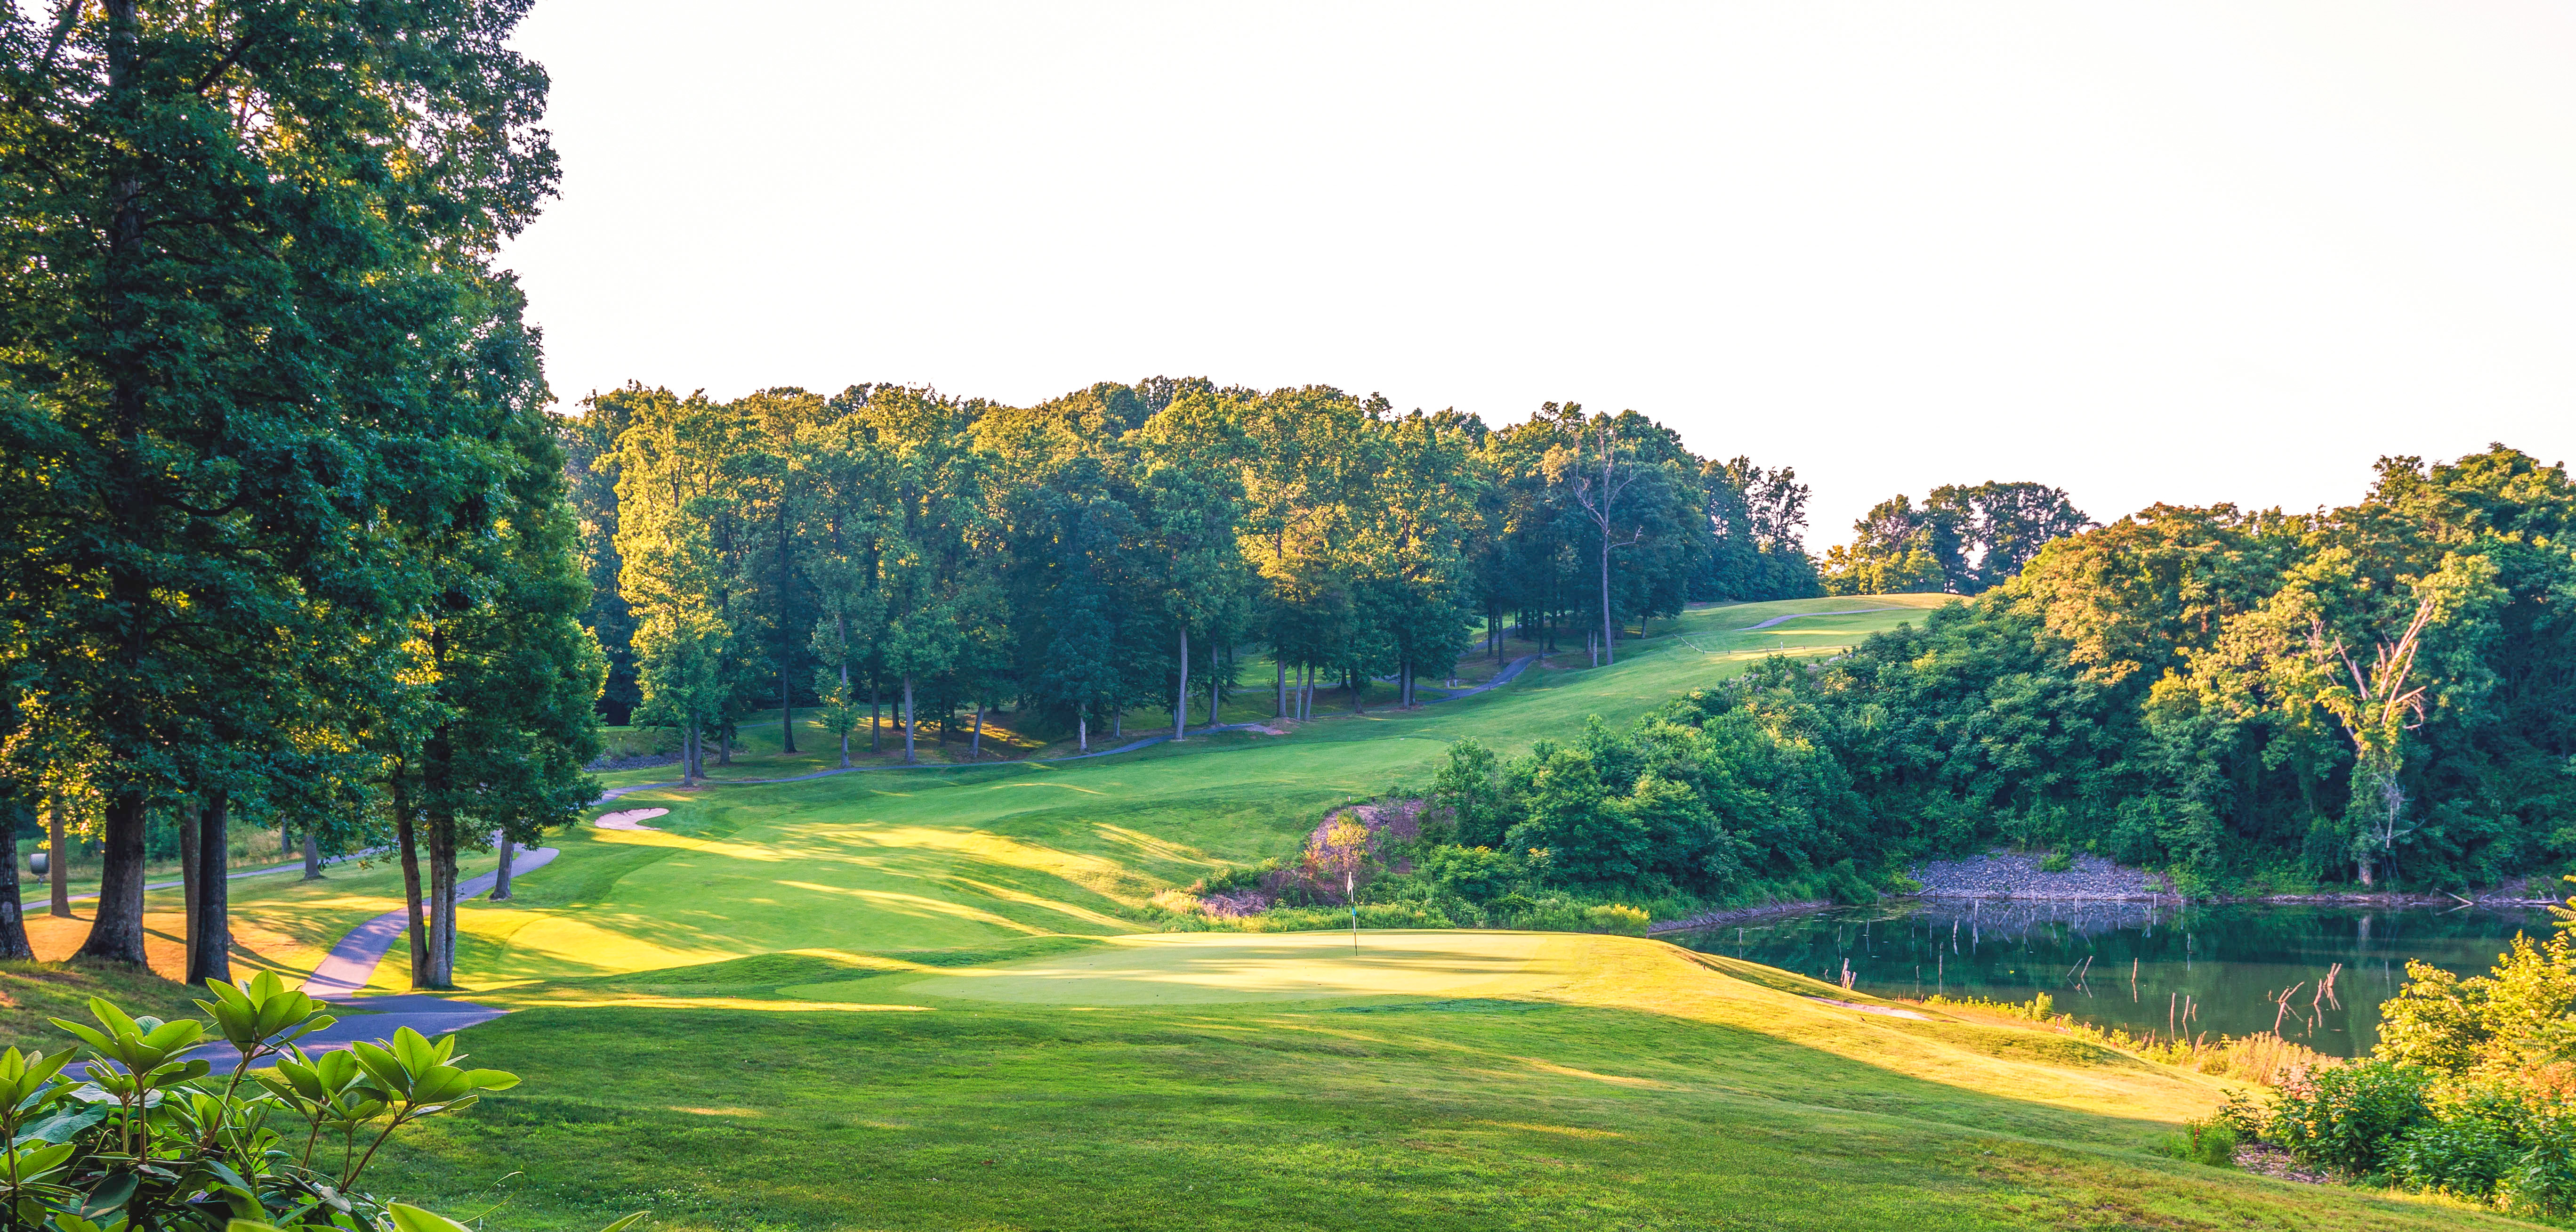 Top 20 Public Golf Courses In Pa Ranking Where You Can Play Like A Pro In 2019 Pennlive Com